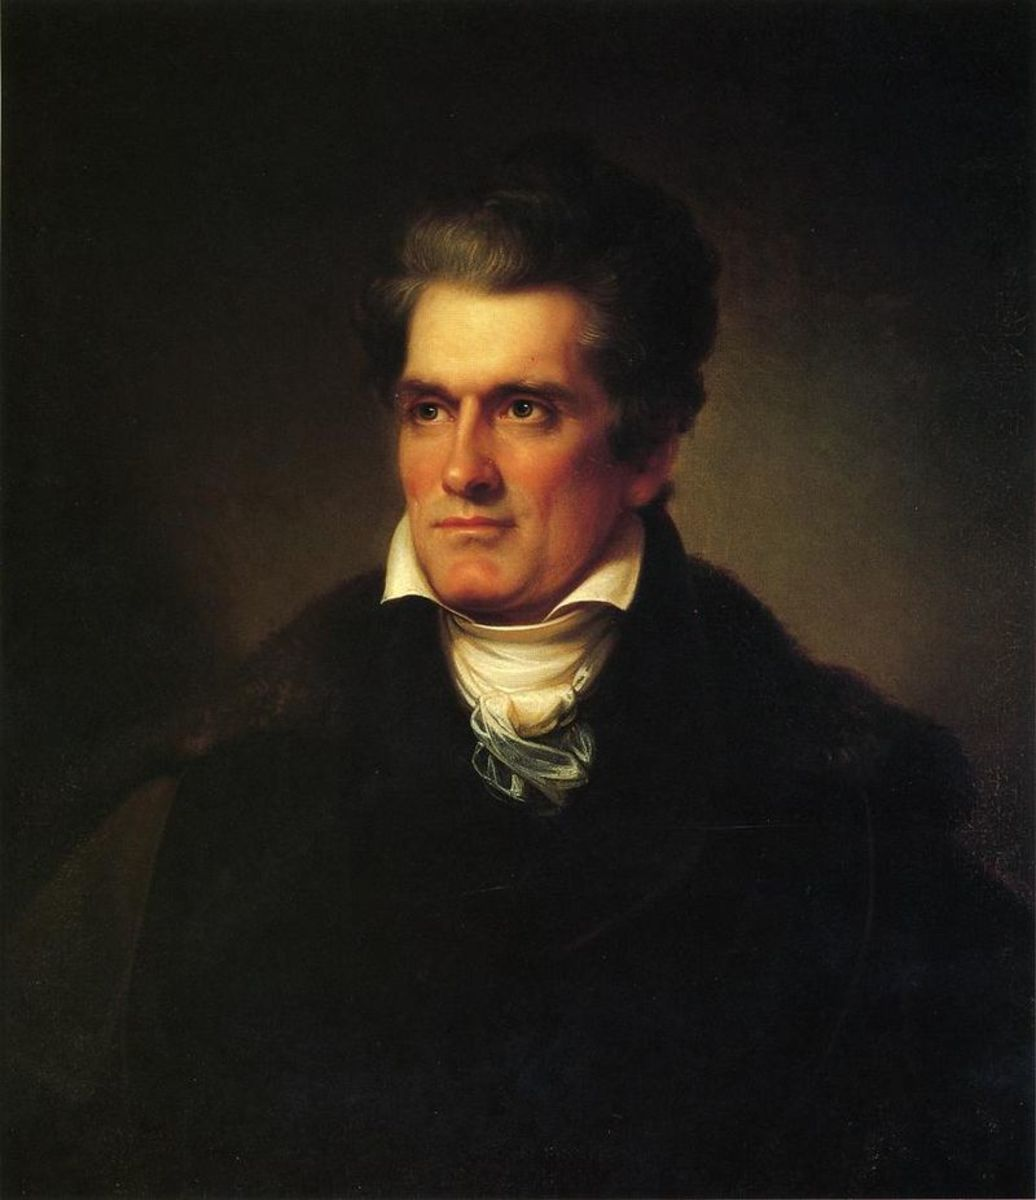 John C. Calhoun: Seventh Vice President of the United States